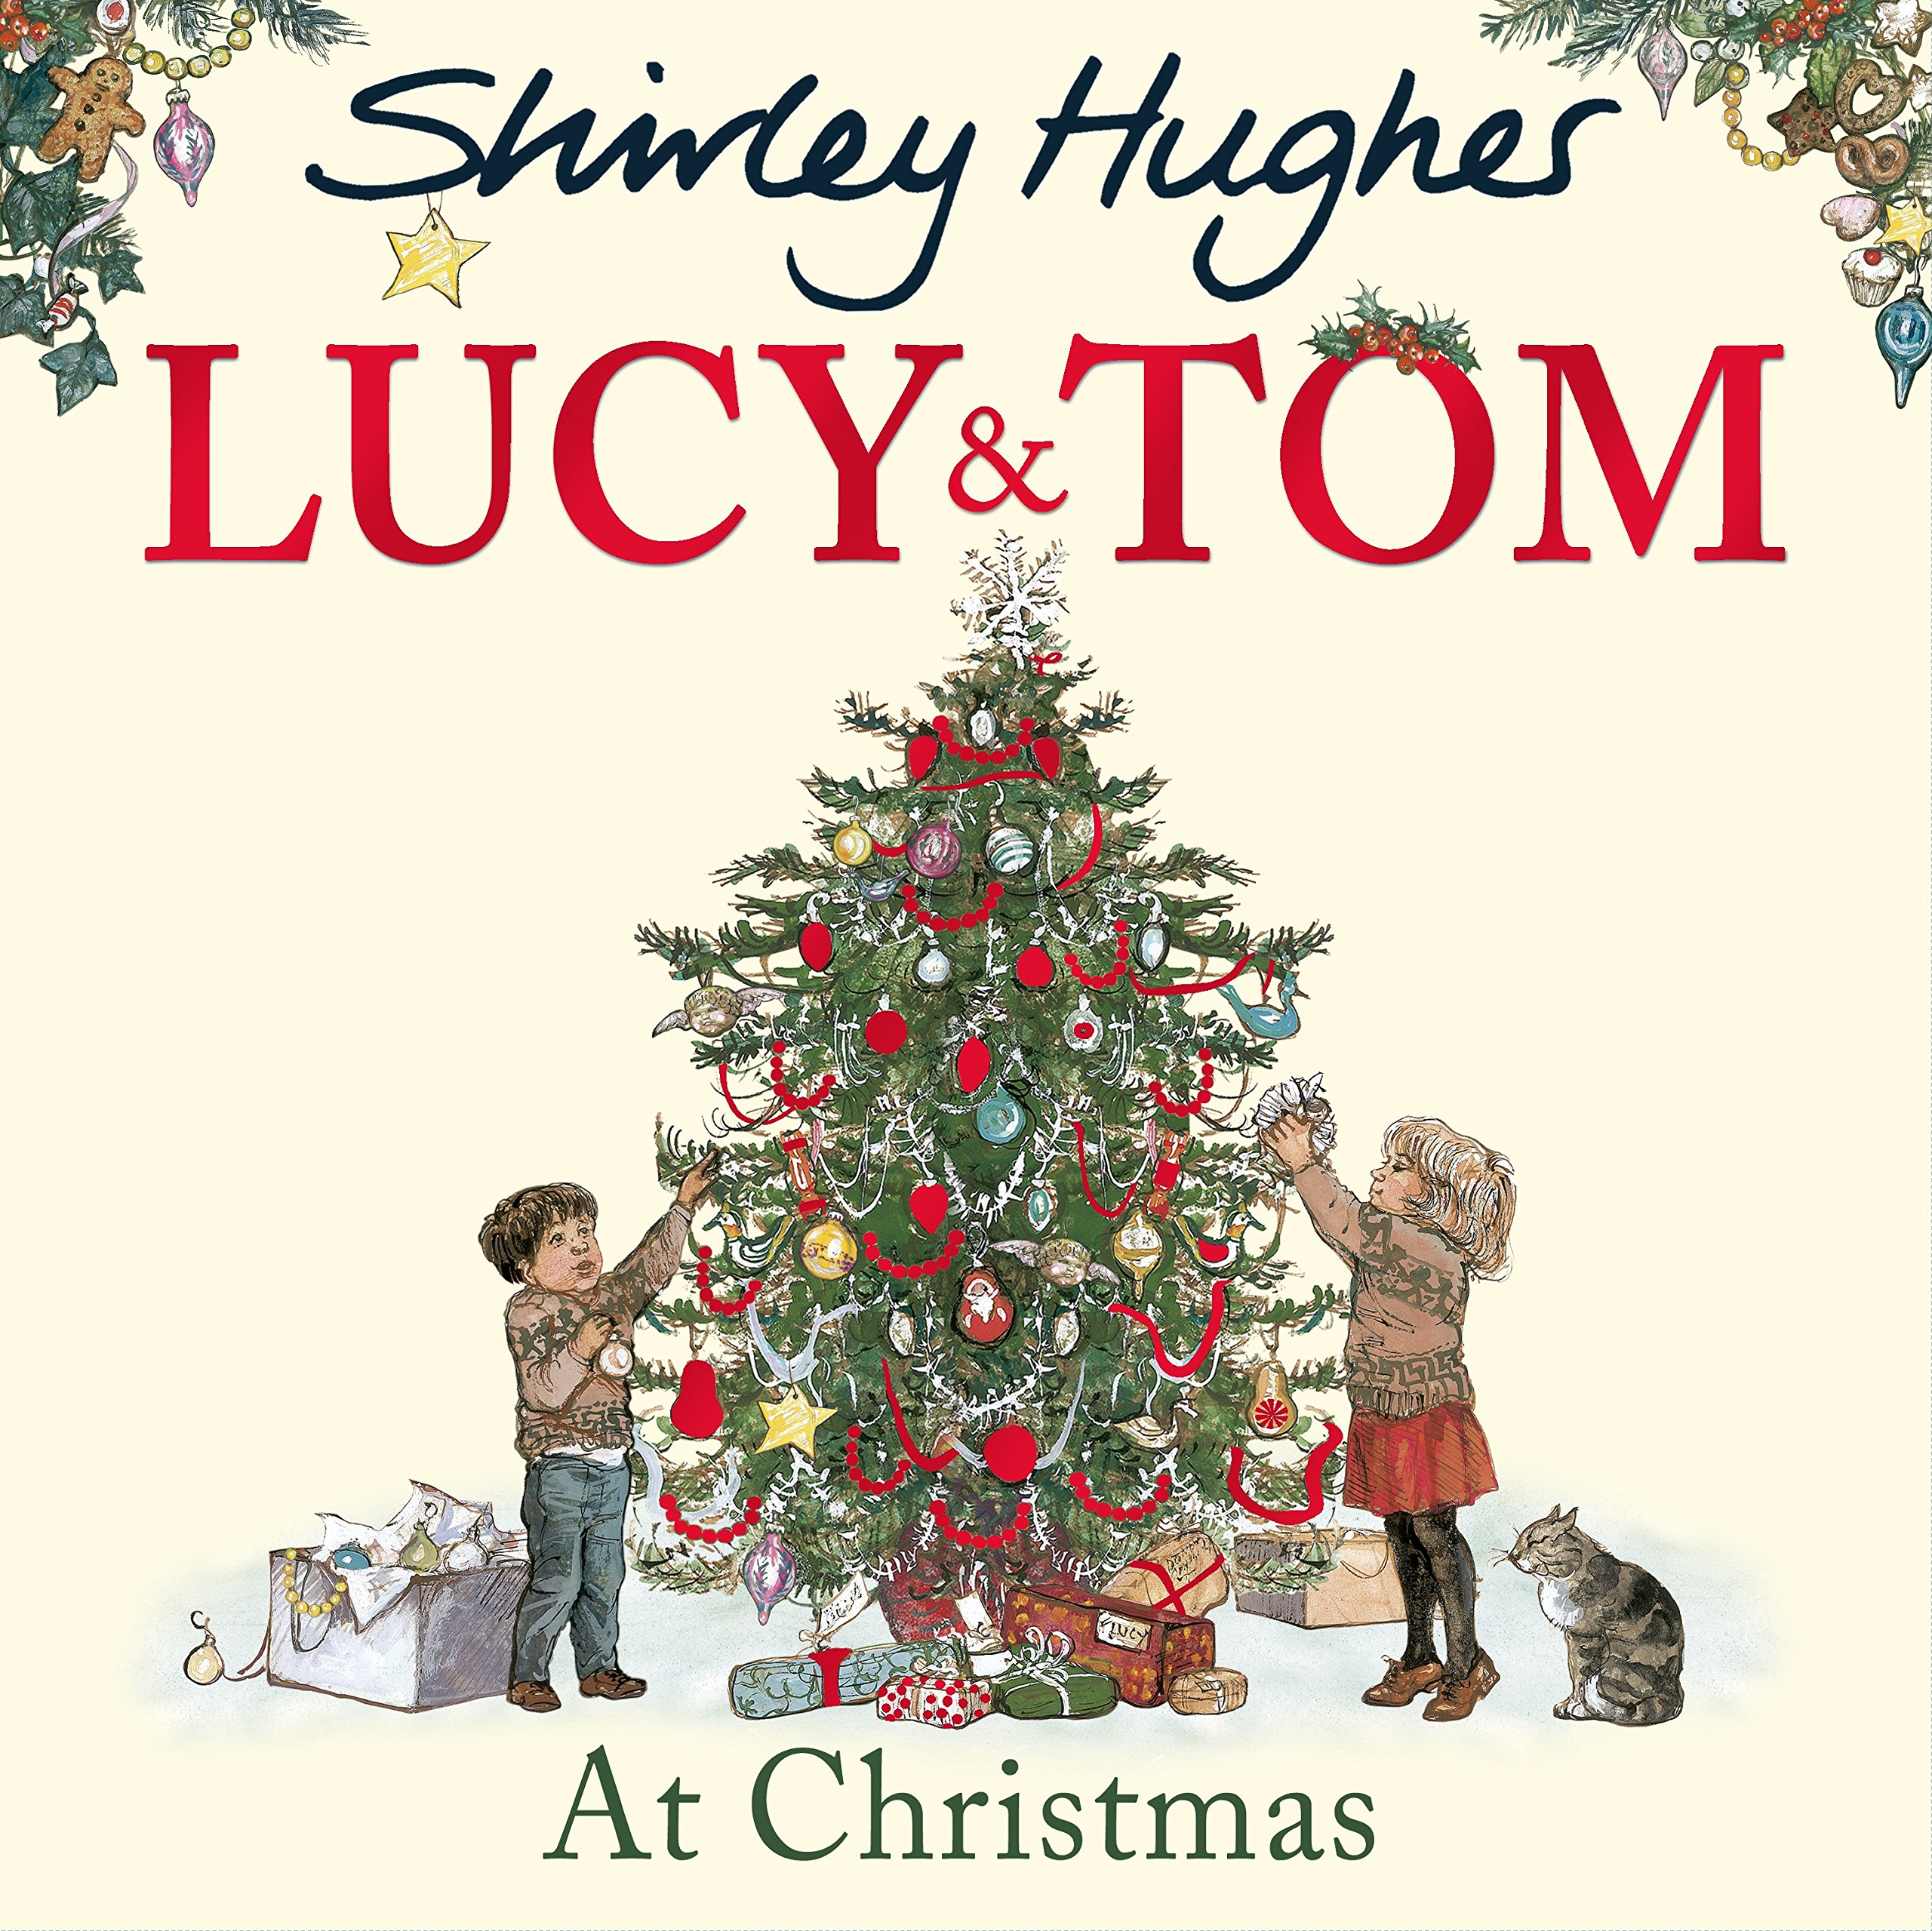 Lucy tom at christmas lucy and tom shirley hughes lucy tom at christmas lucy and tom shirley hughes 9781782955504 amazon books kristyandbryce Images